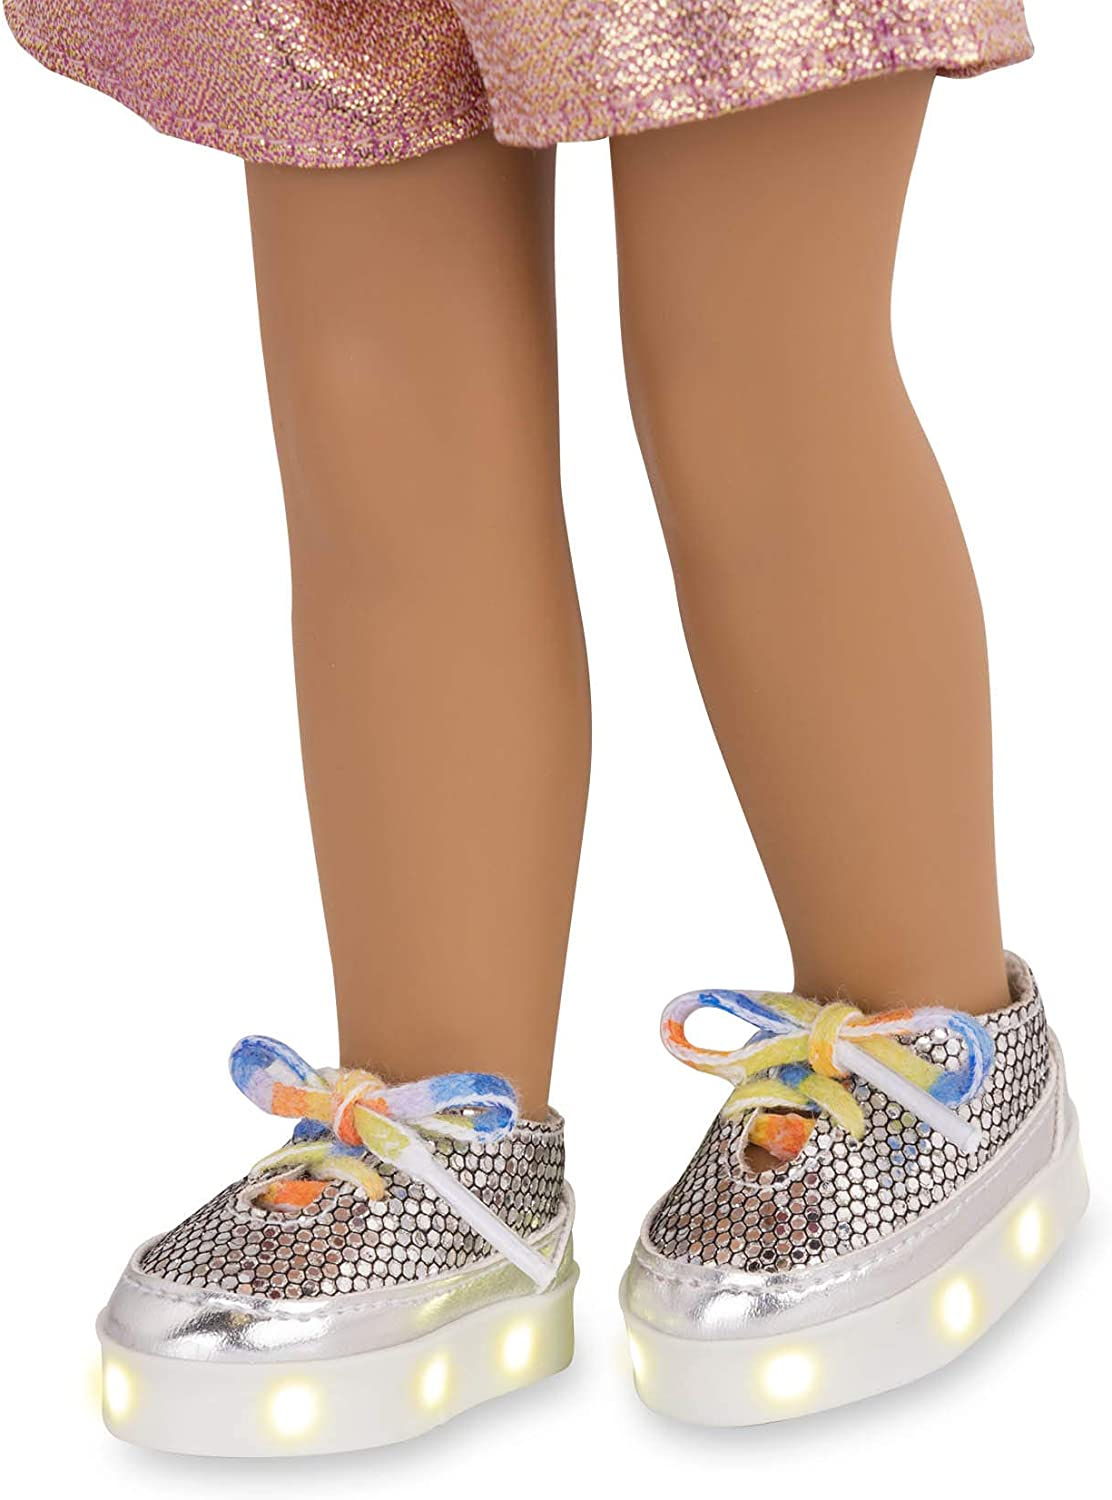 Shimmering Silver with LED Lights Brown//A Lucky Silver Light-up Shoes with Rainbow Shoelaces for 14-inch Dolls Toys Clothes and Accessories for Ages 3 and Up Glitter Girls by Battat